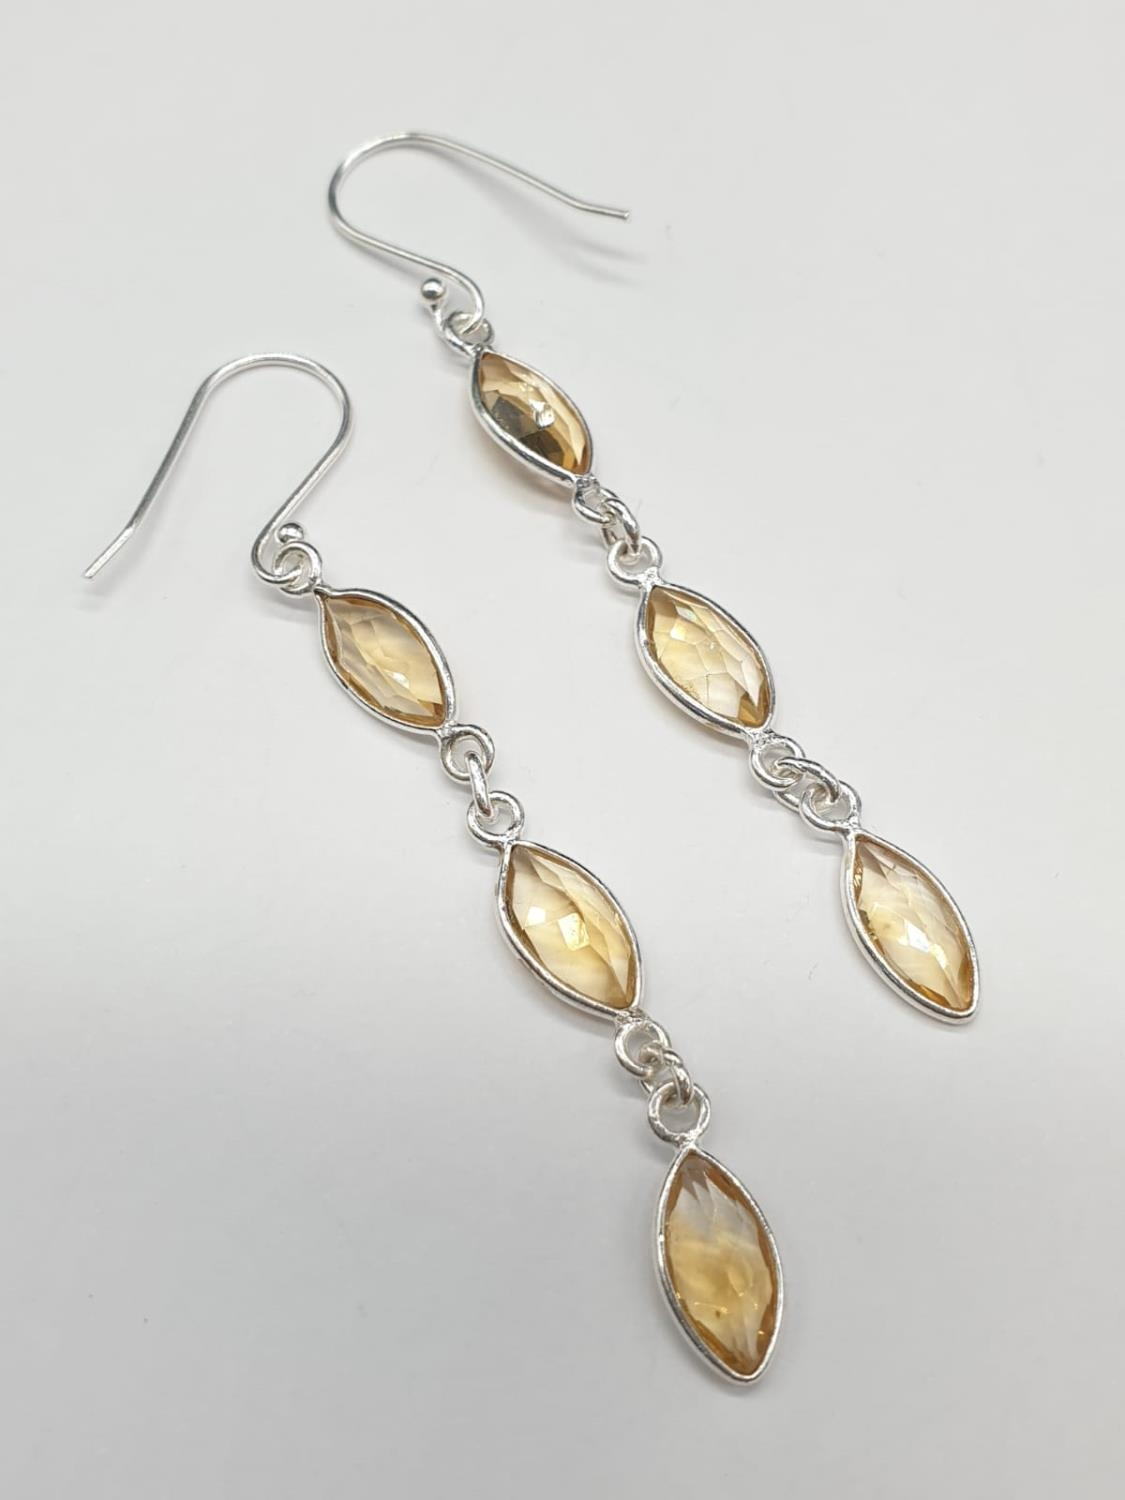 Marquise Shape Citrine Bracelet with Matching Dangler Earrings and Ring in Sterling Silver. Ring - Image 2 of 6